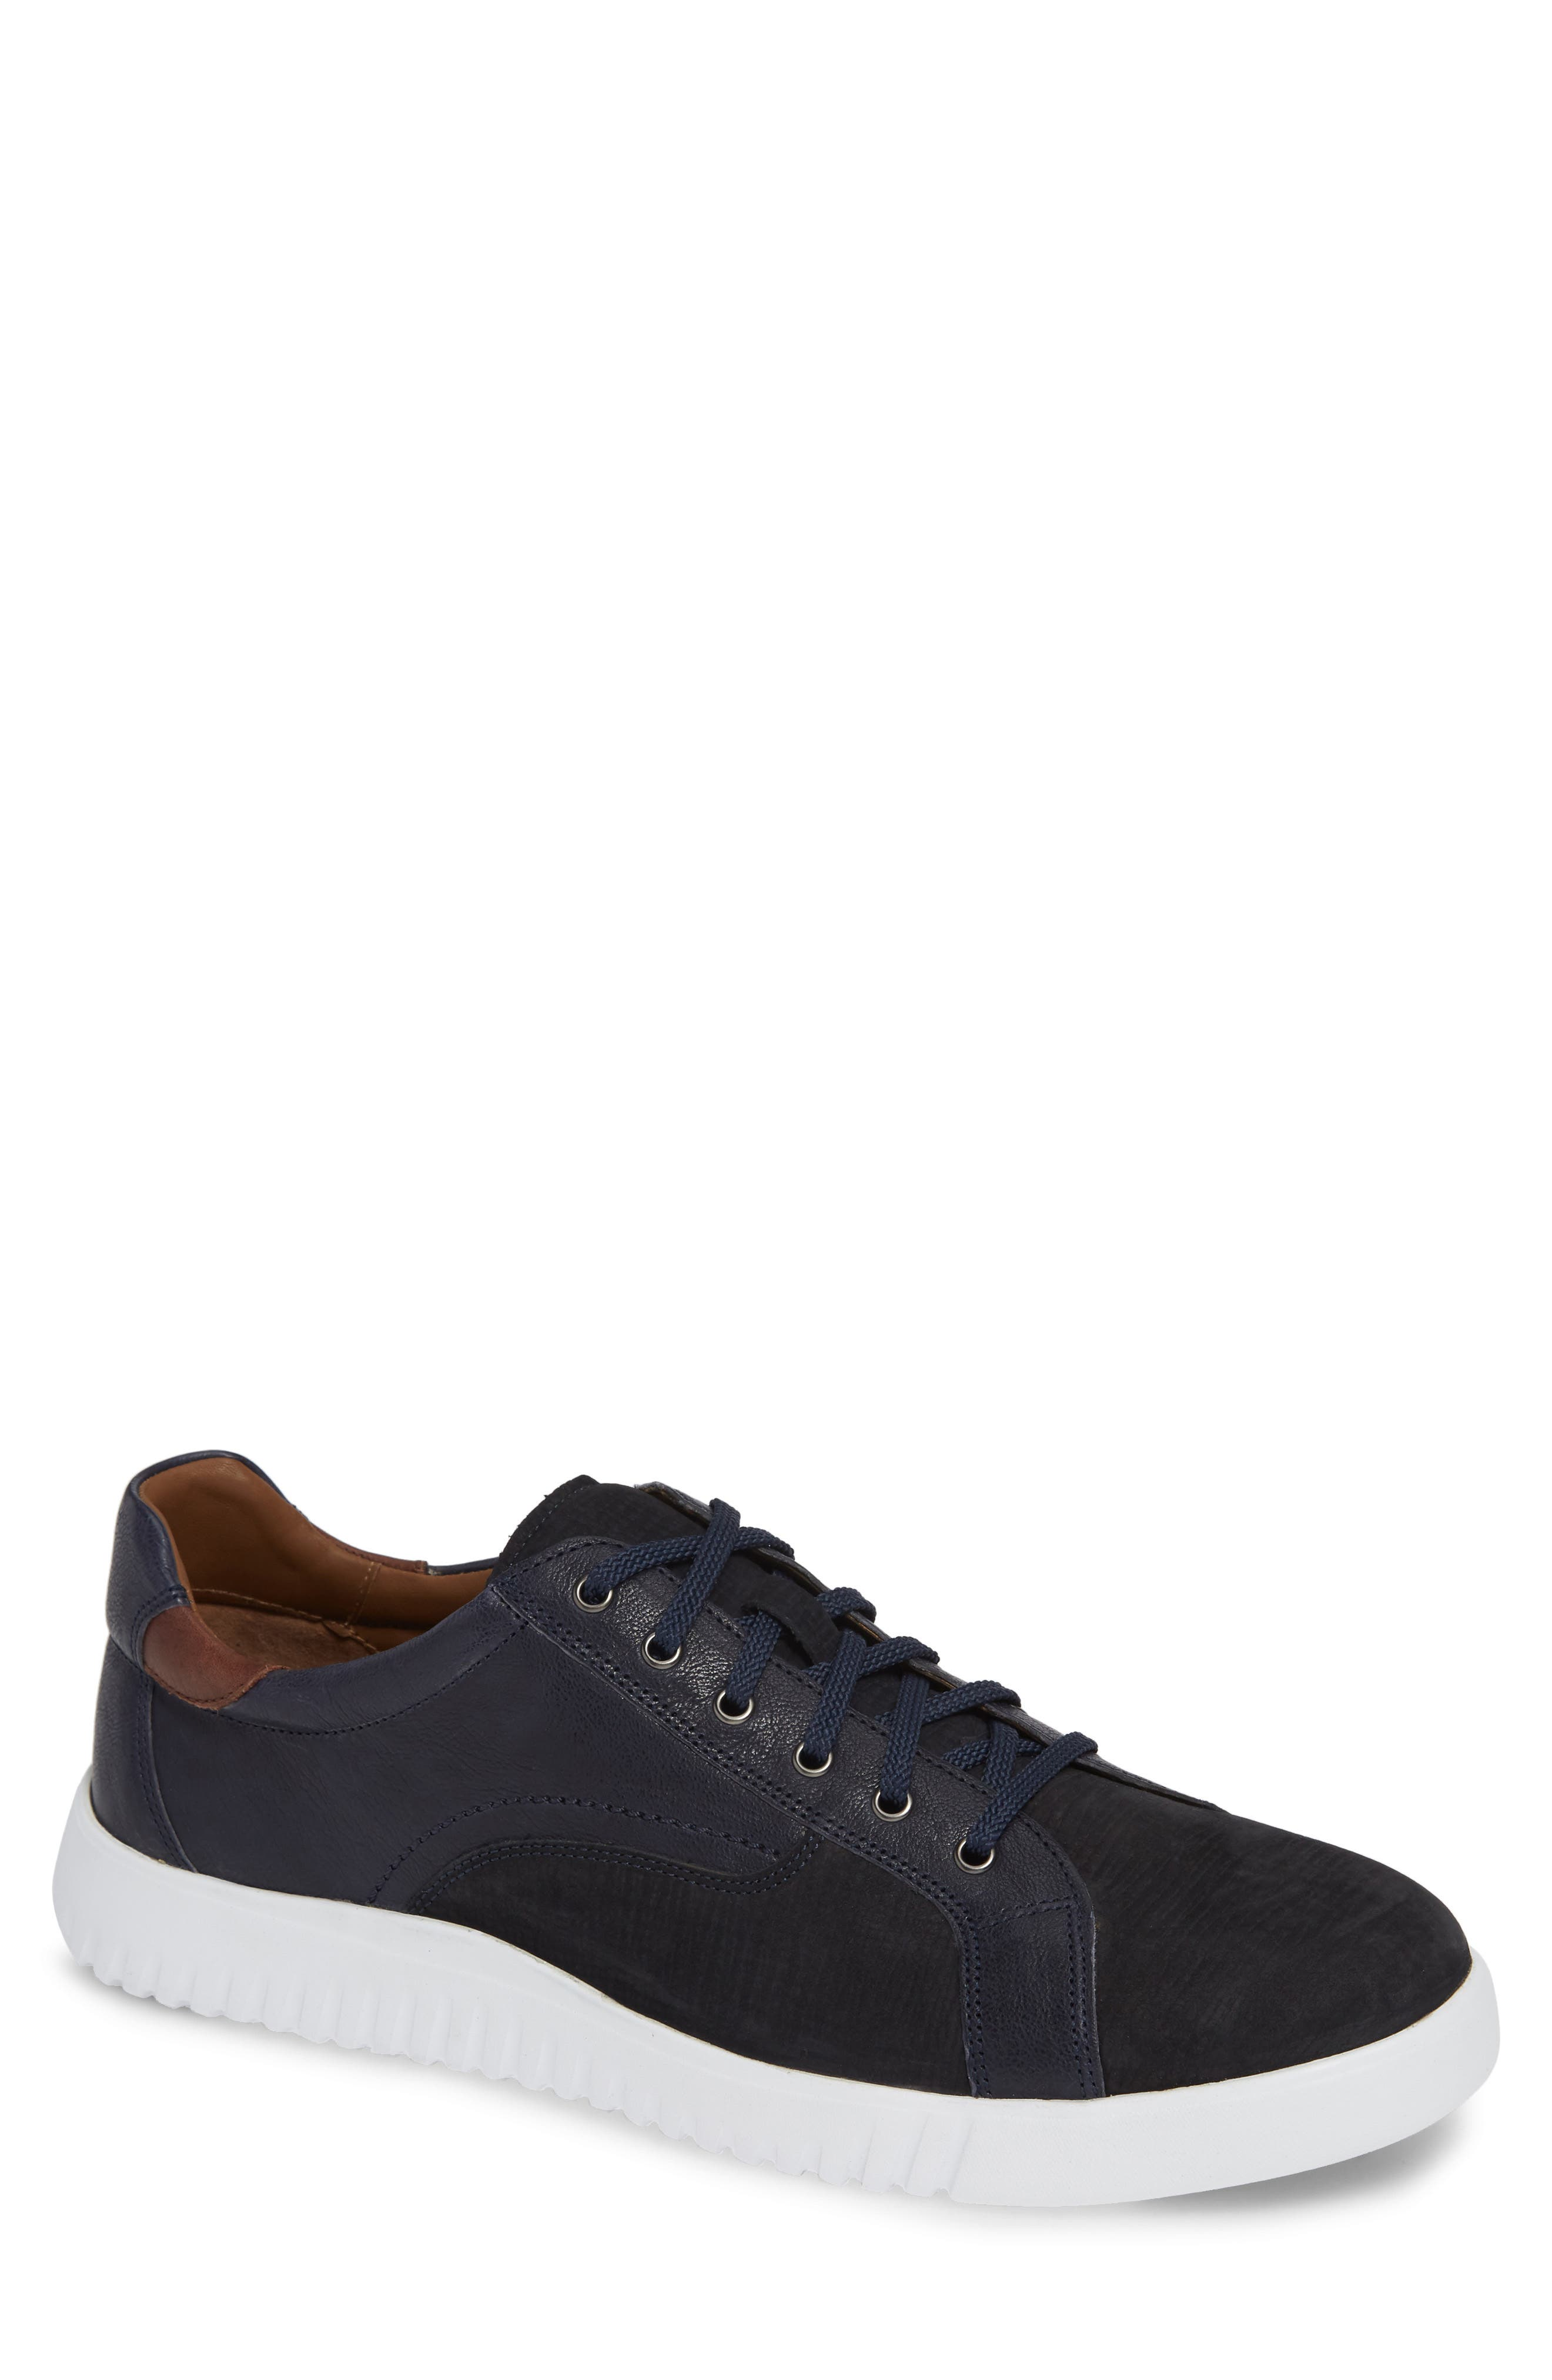 McFarland Sneaker,                             Main thumbnail 1, color,                             NAVY NUBUCK